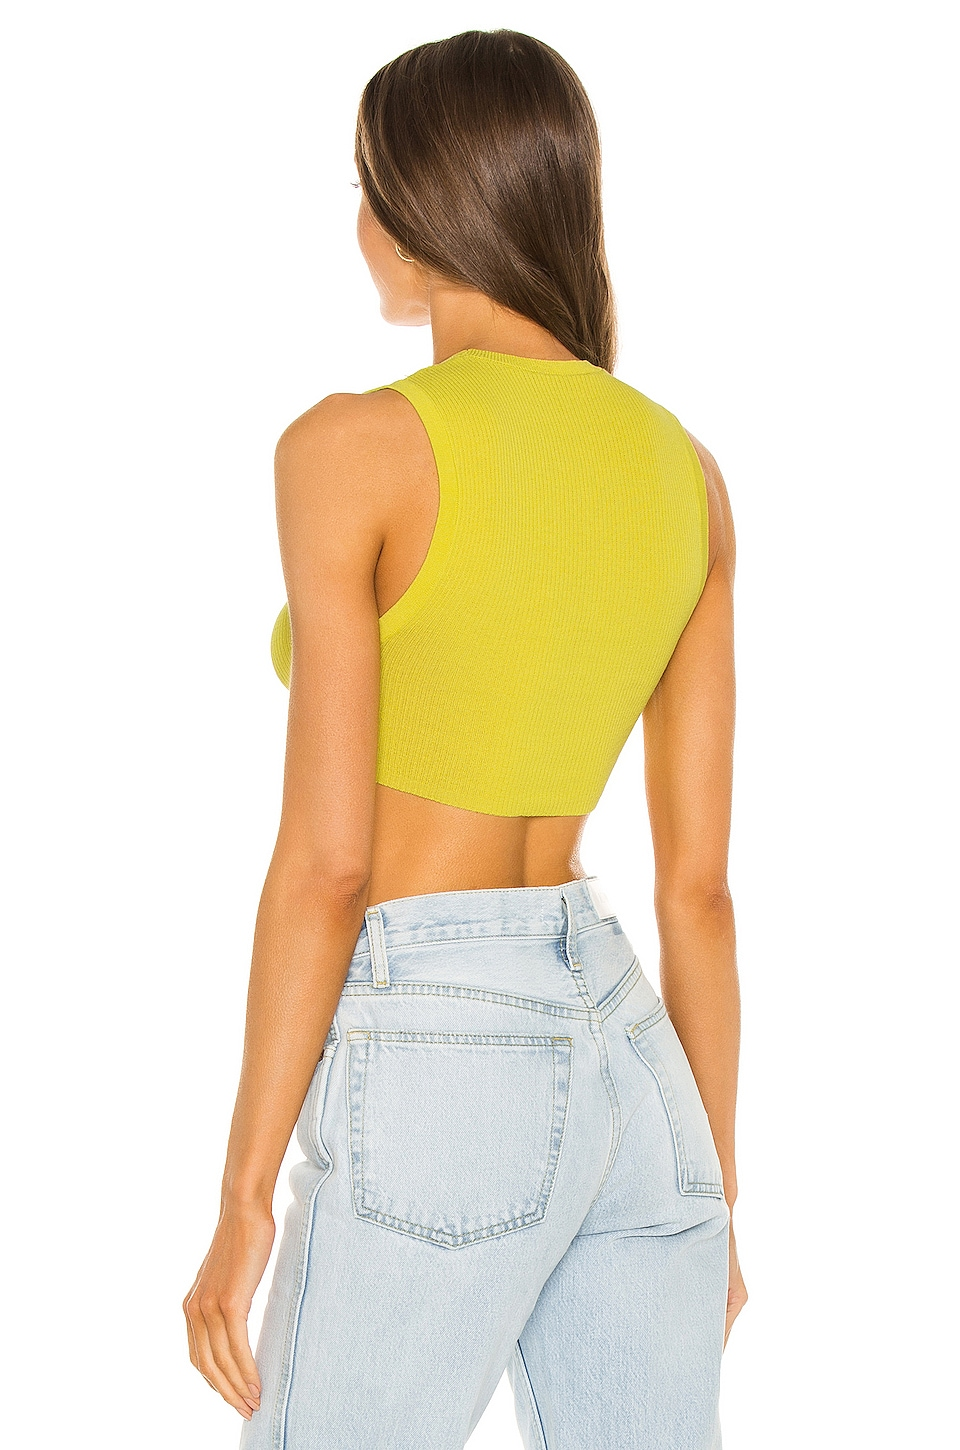 Muscle Up Tank by Free People, available on revolve.com for $38 Kendall Jenner Top SIMILAR PRODUCT